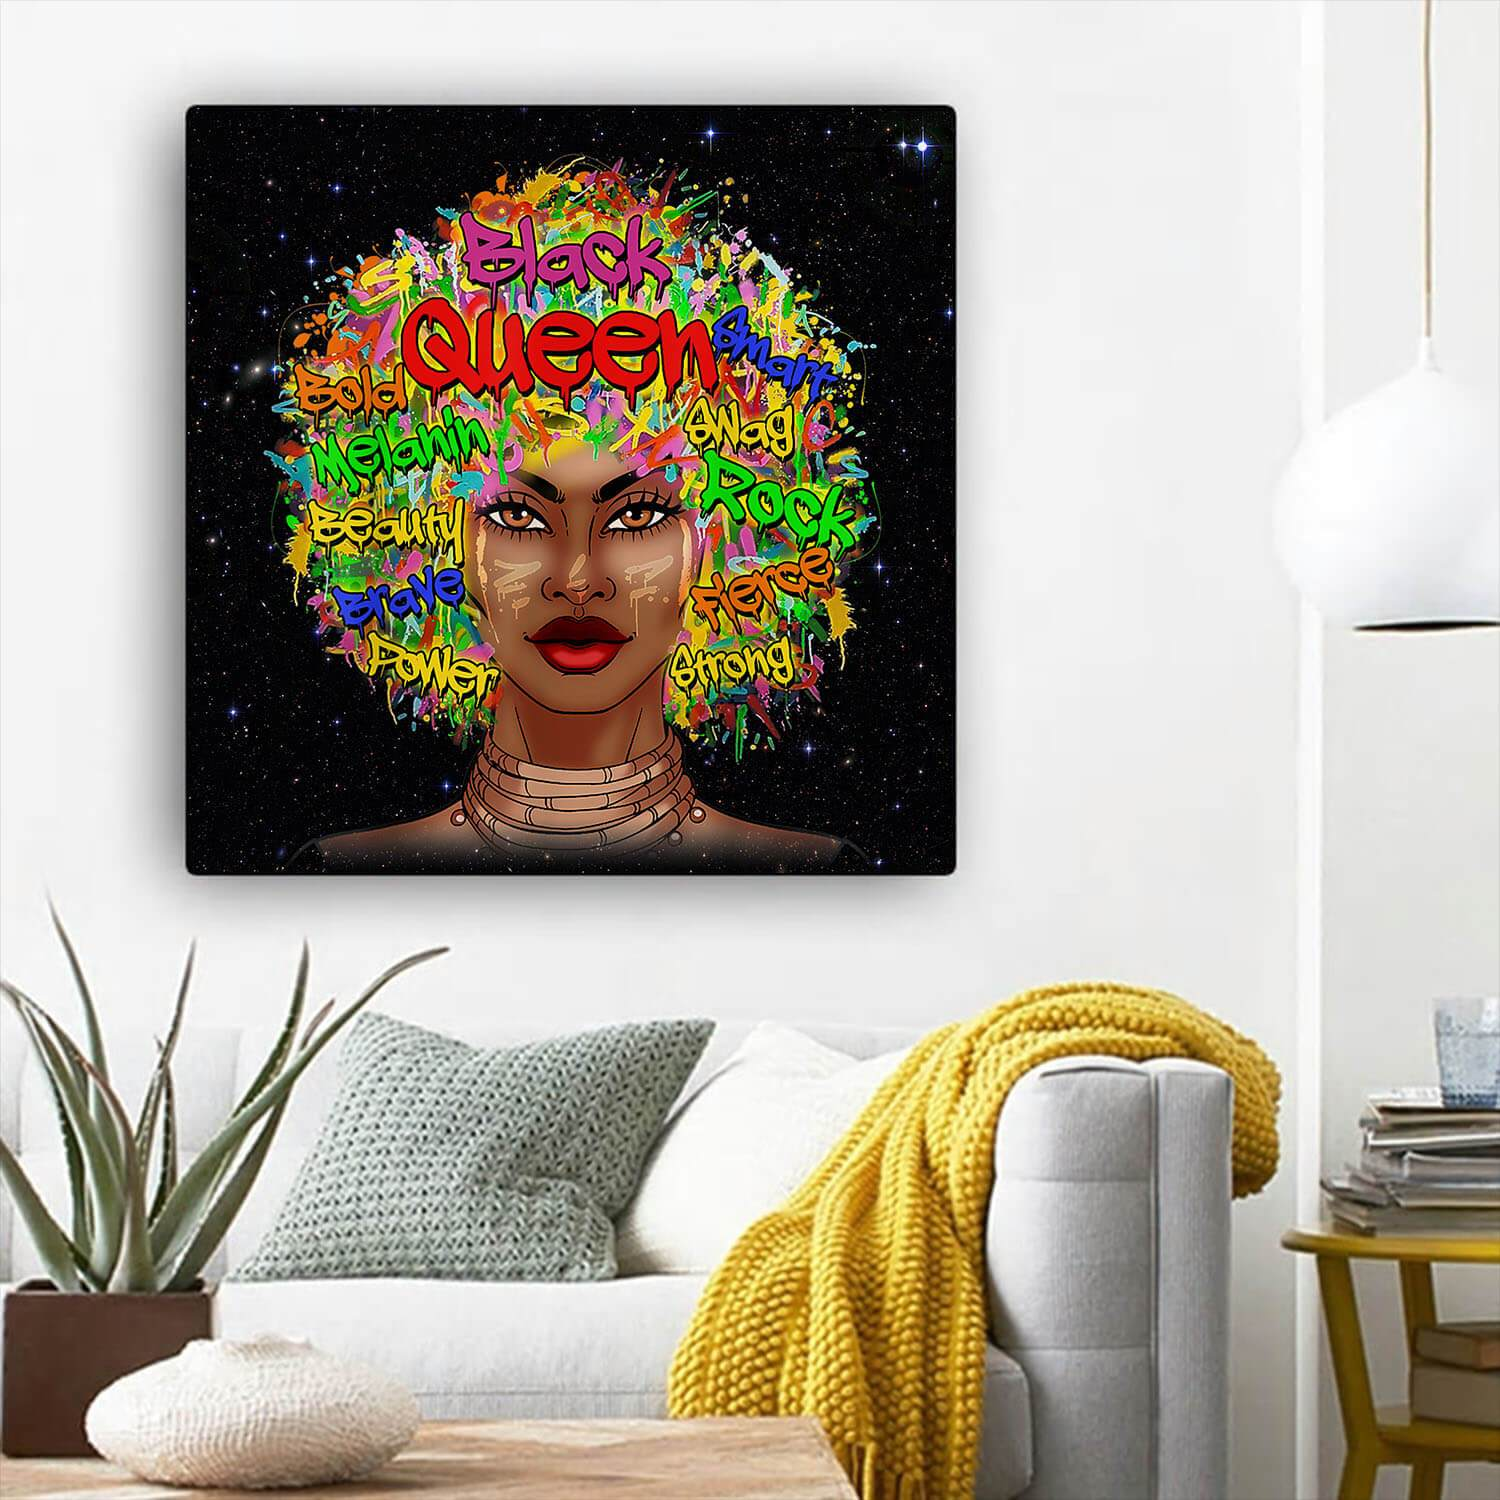 Black History Art Beautiful Afro Girl Modern Black Art Afrocentric Hom Bigprostore